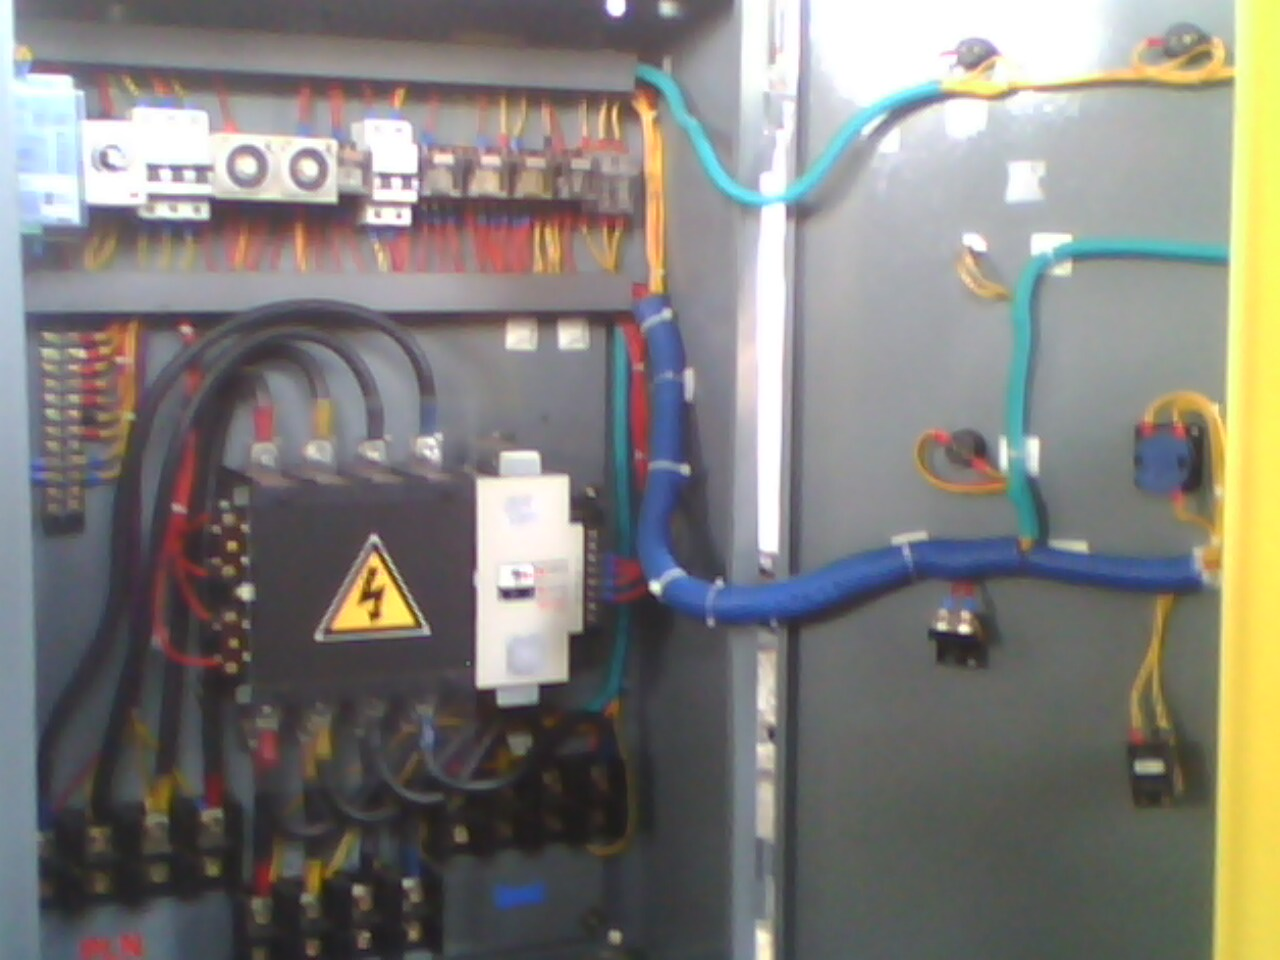 Installation Of Electrical Panels Instalasi Panel Listrik Ats Socomec Wiring Diagram Automatic Transfer Swicth